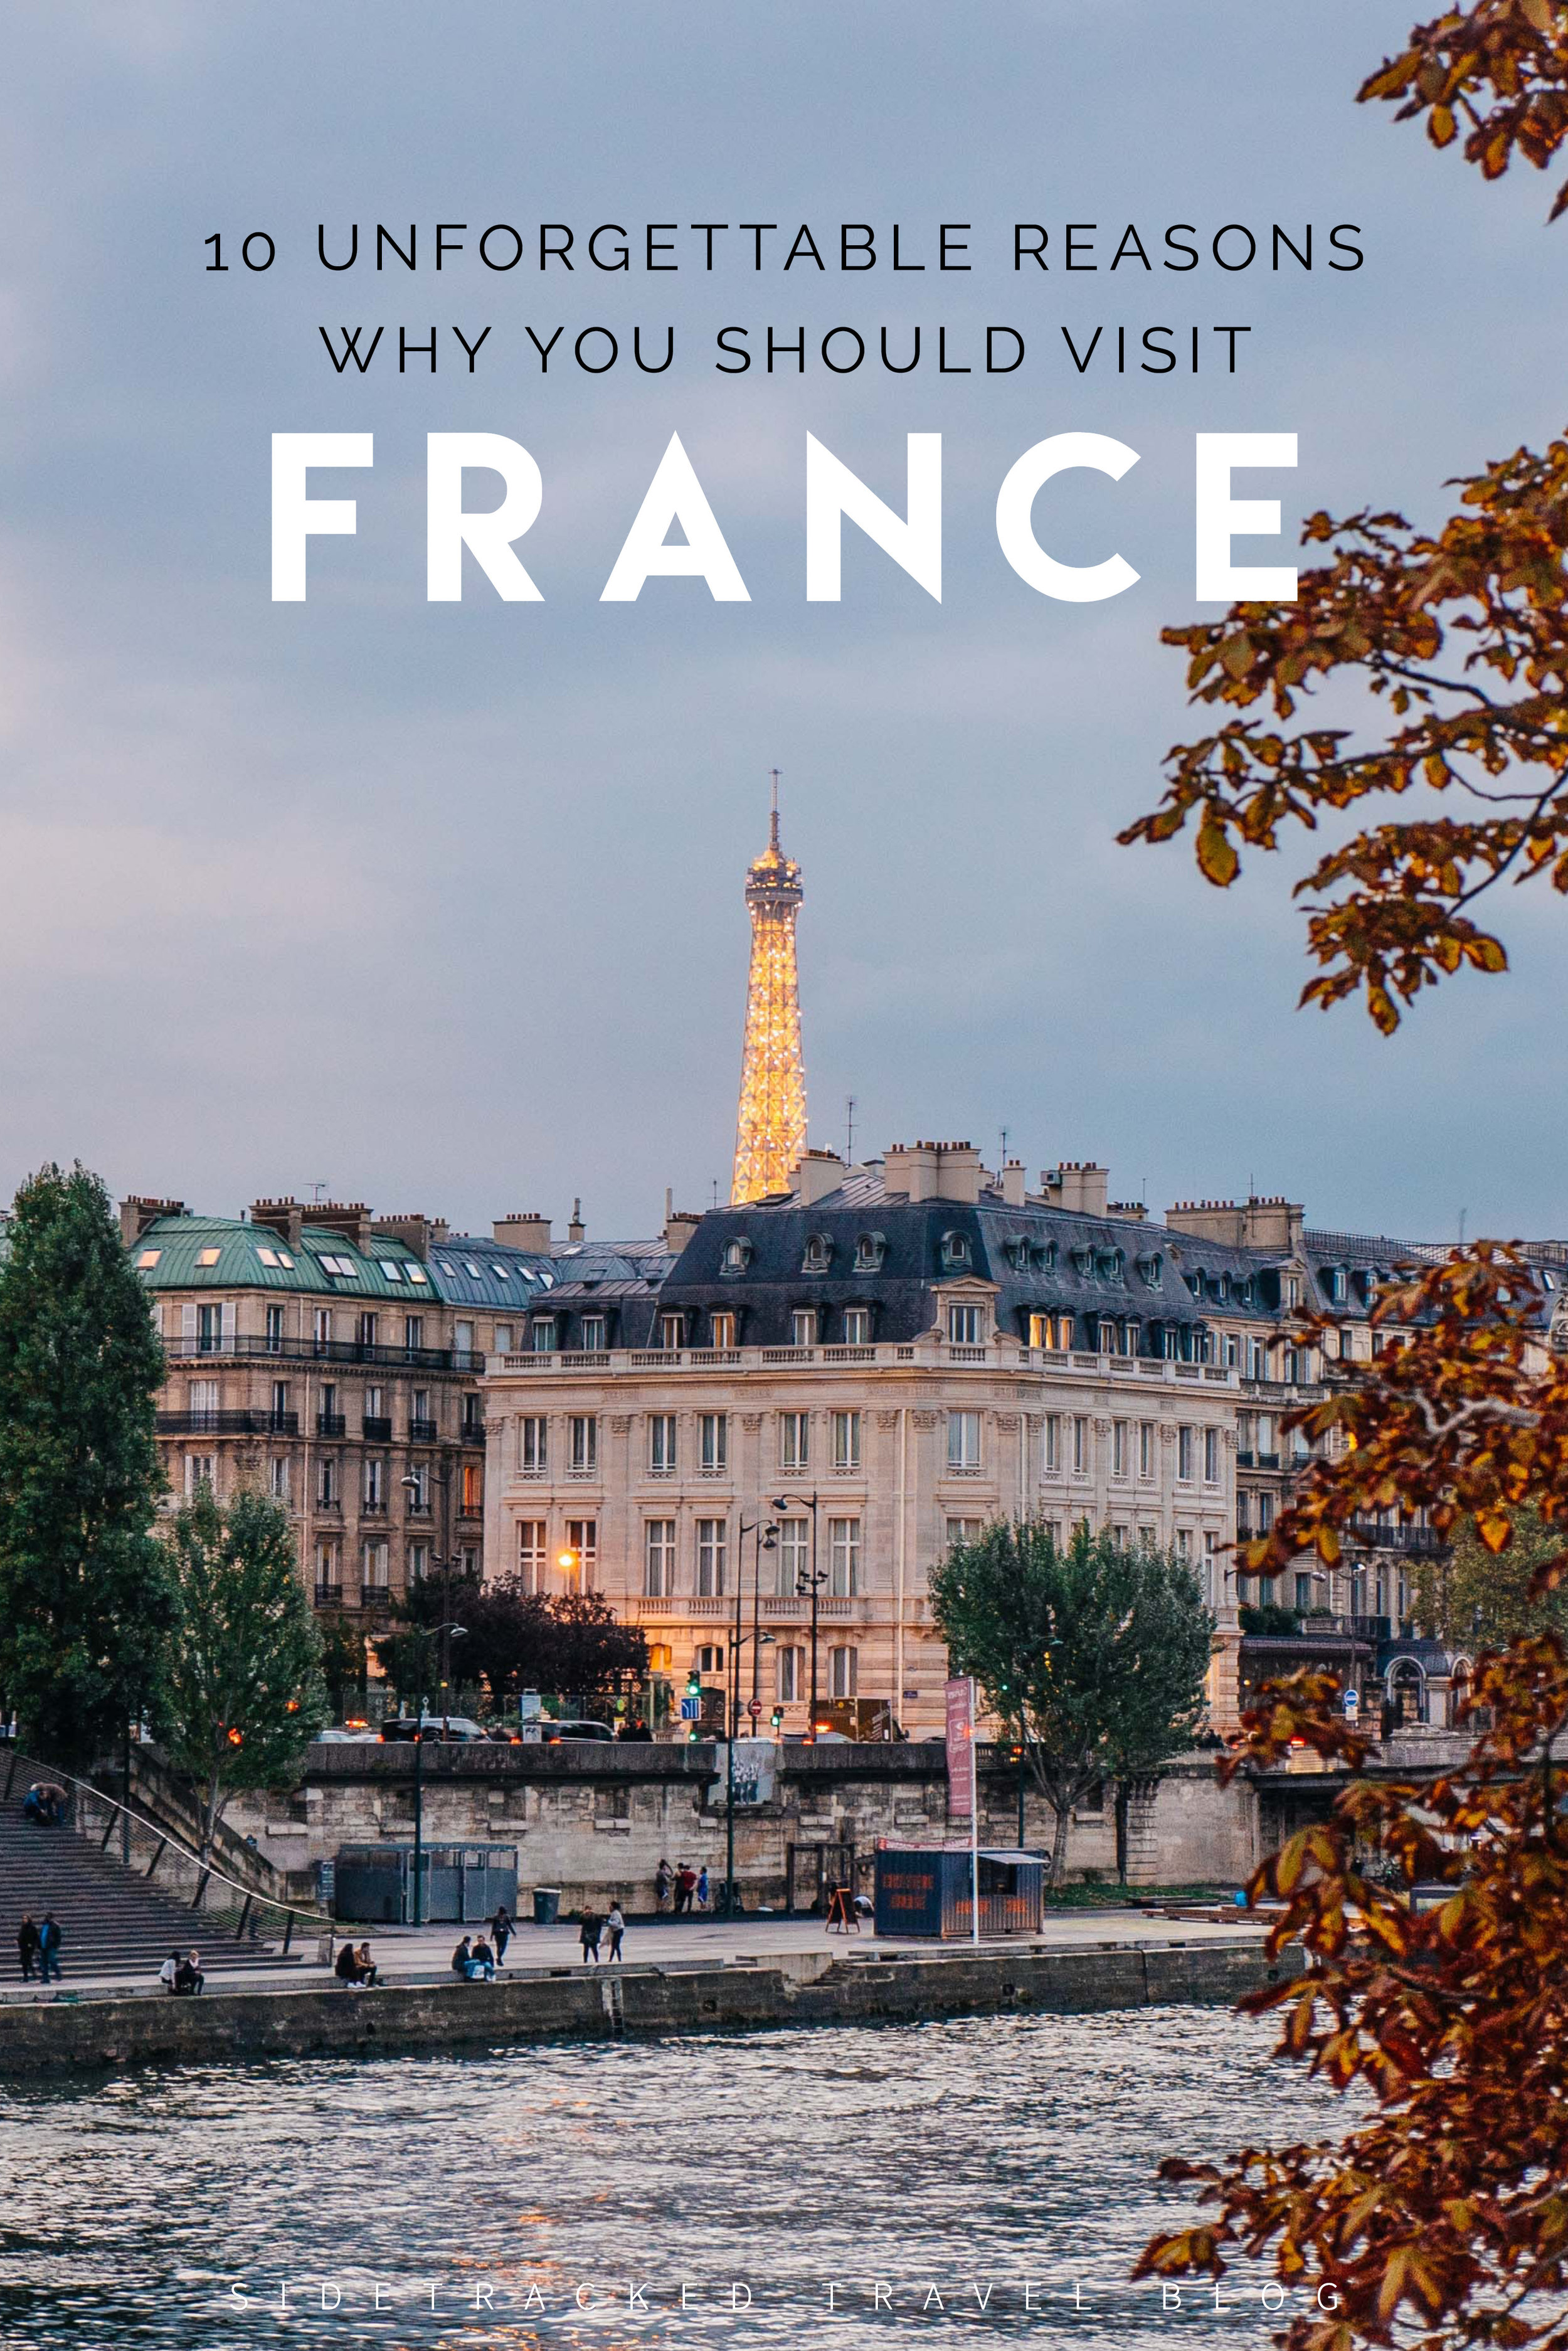 From its cosmopolitan cities to charming villages, striking coastline to the French Alps, plus a rich history and a delicious cuisine, there are so many reasons why travelers should head to France at least once. To help you get inspired and plan your visit, here are 10 unforgettable reasons why you should go!